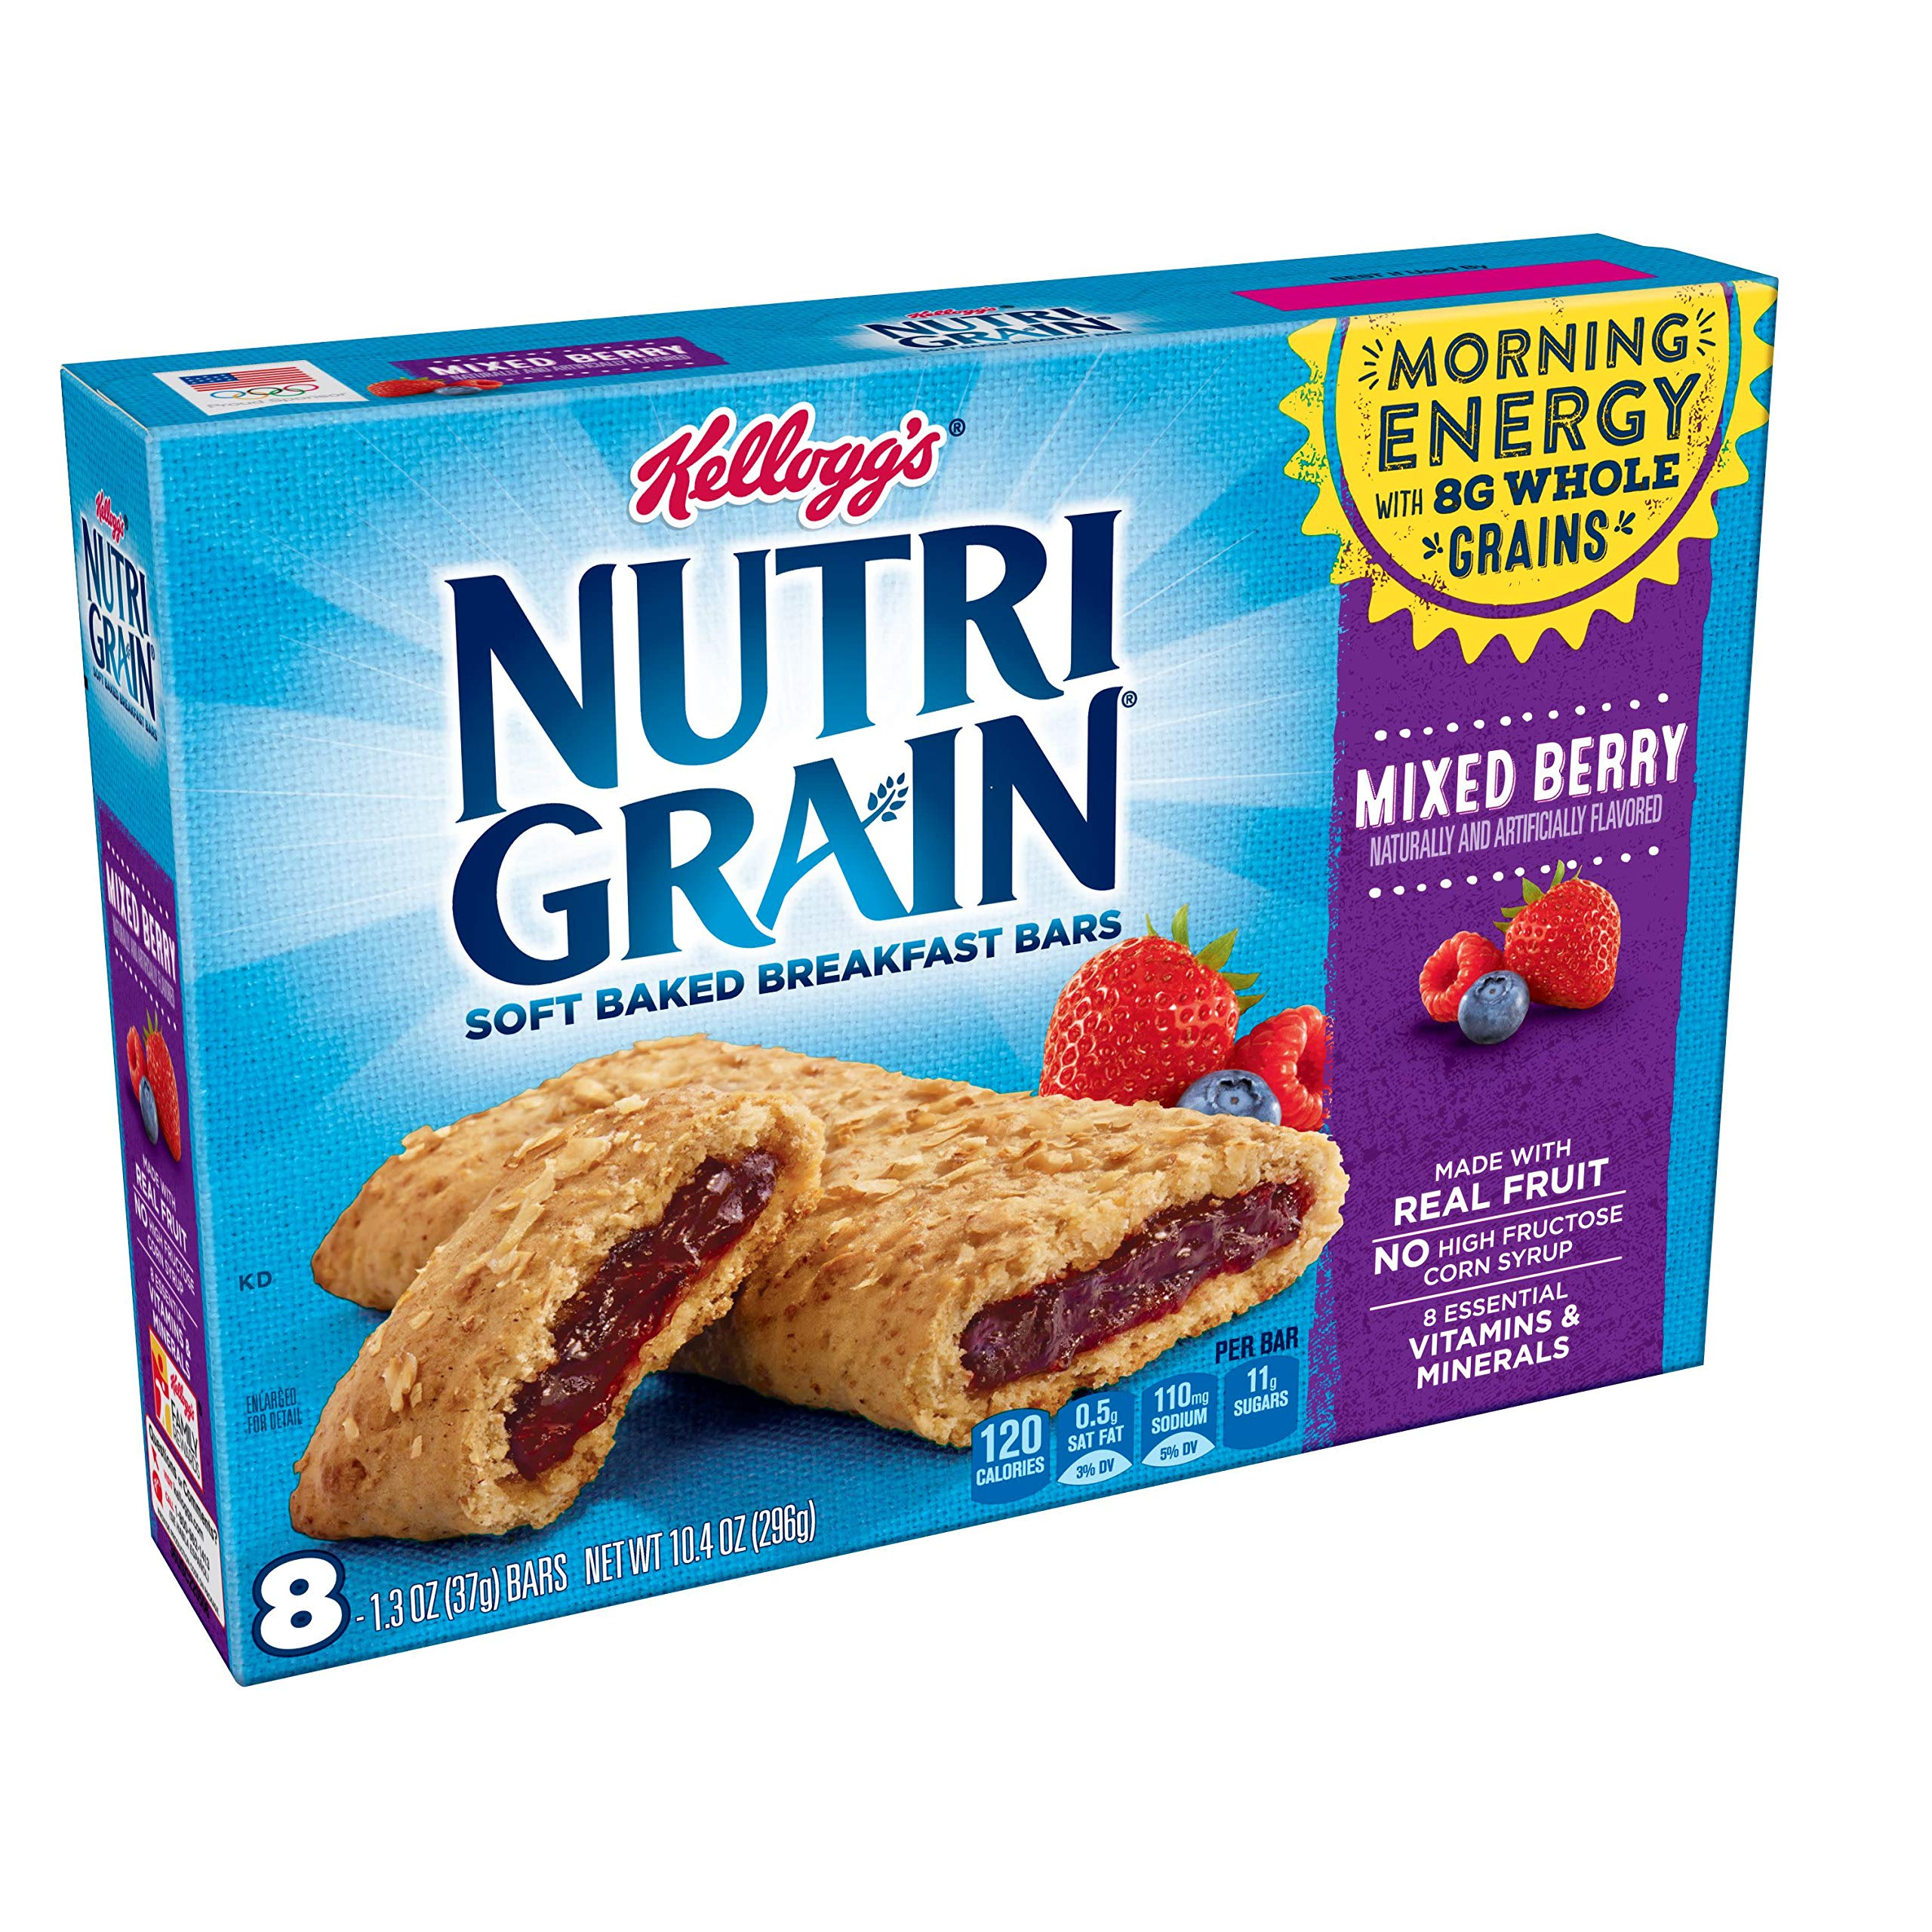 Kellogg's Nutri-Grain, Soft Baked Breakfast Bars, Mixed Berry, Made with Whole Grain, 10.4 oz (6 packages of 8 bars) by Nutri-Grain